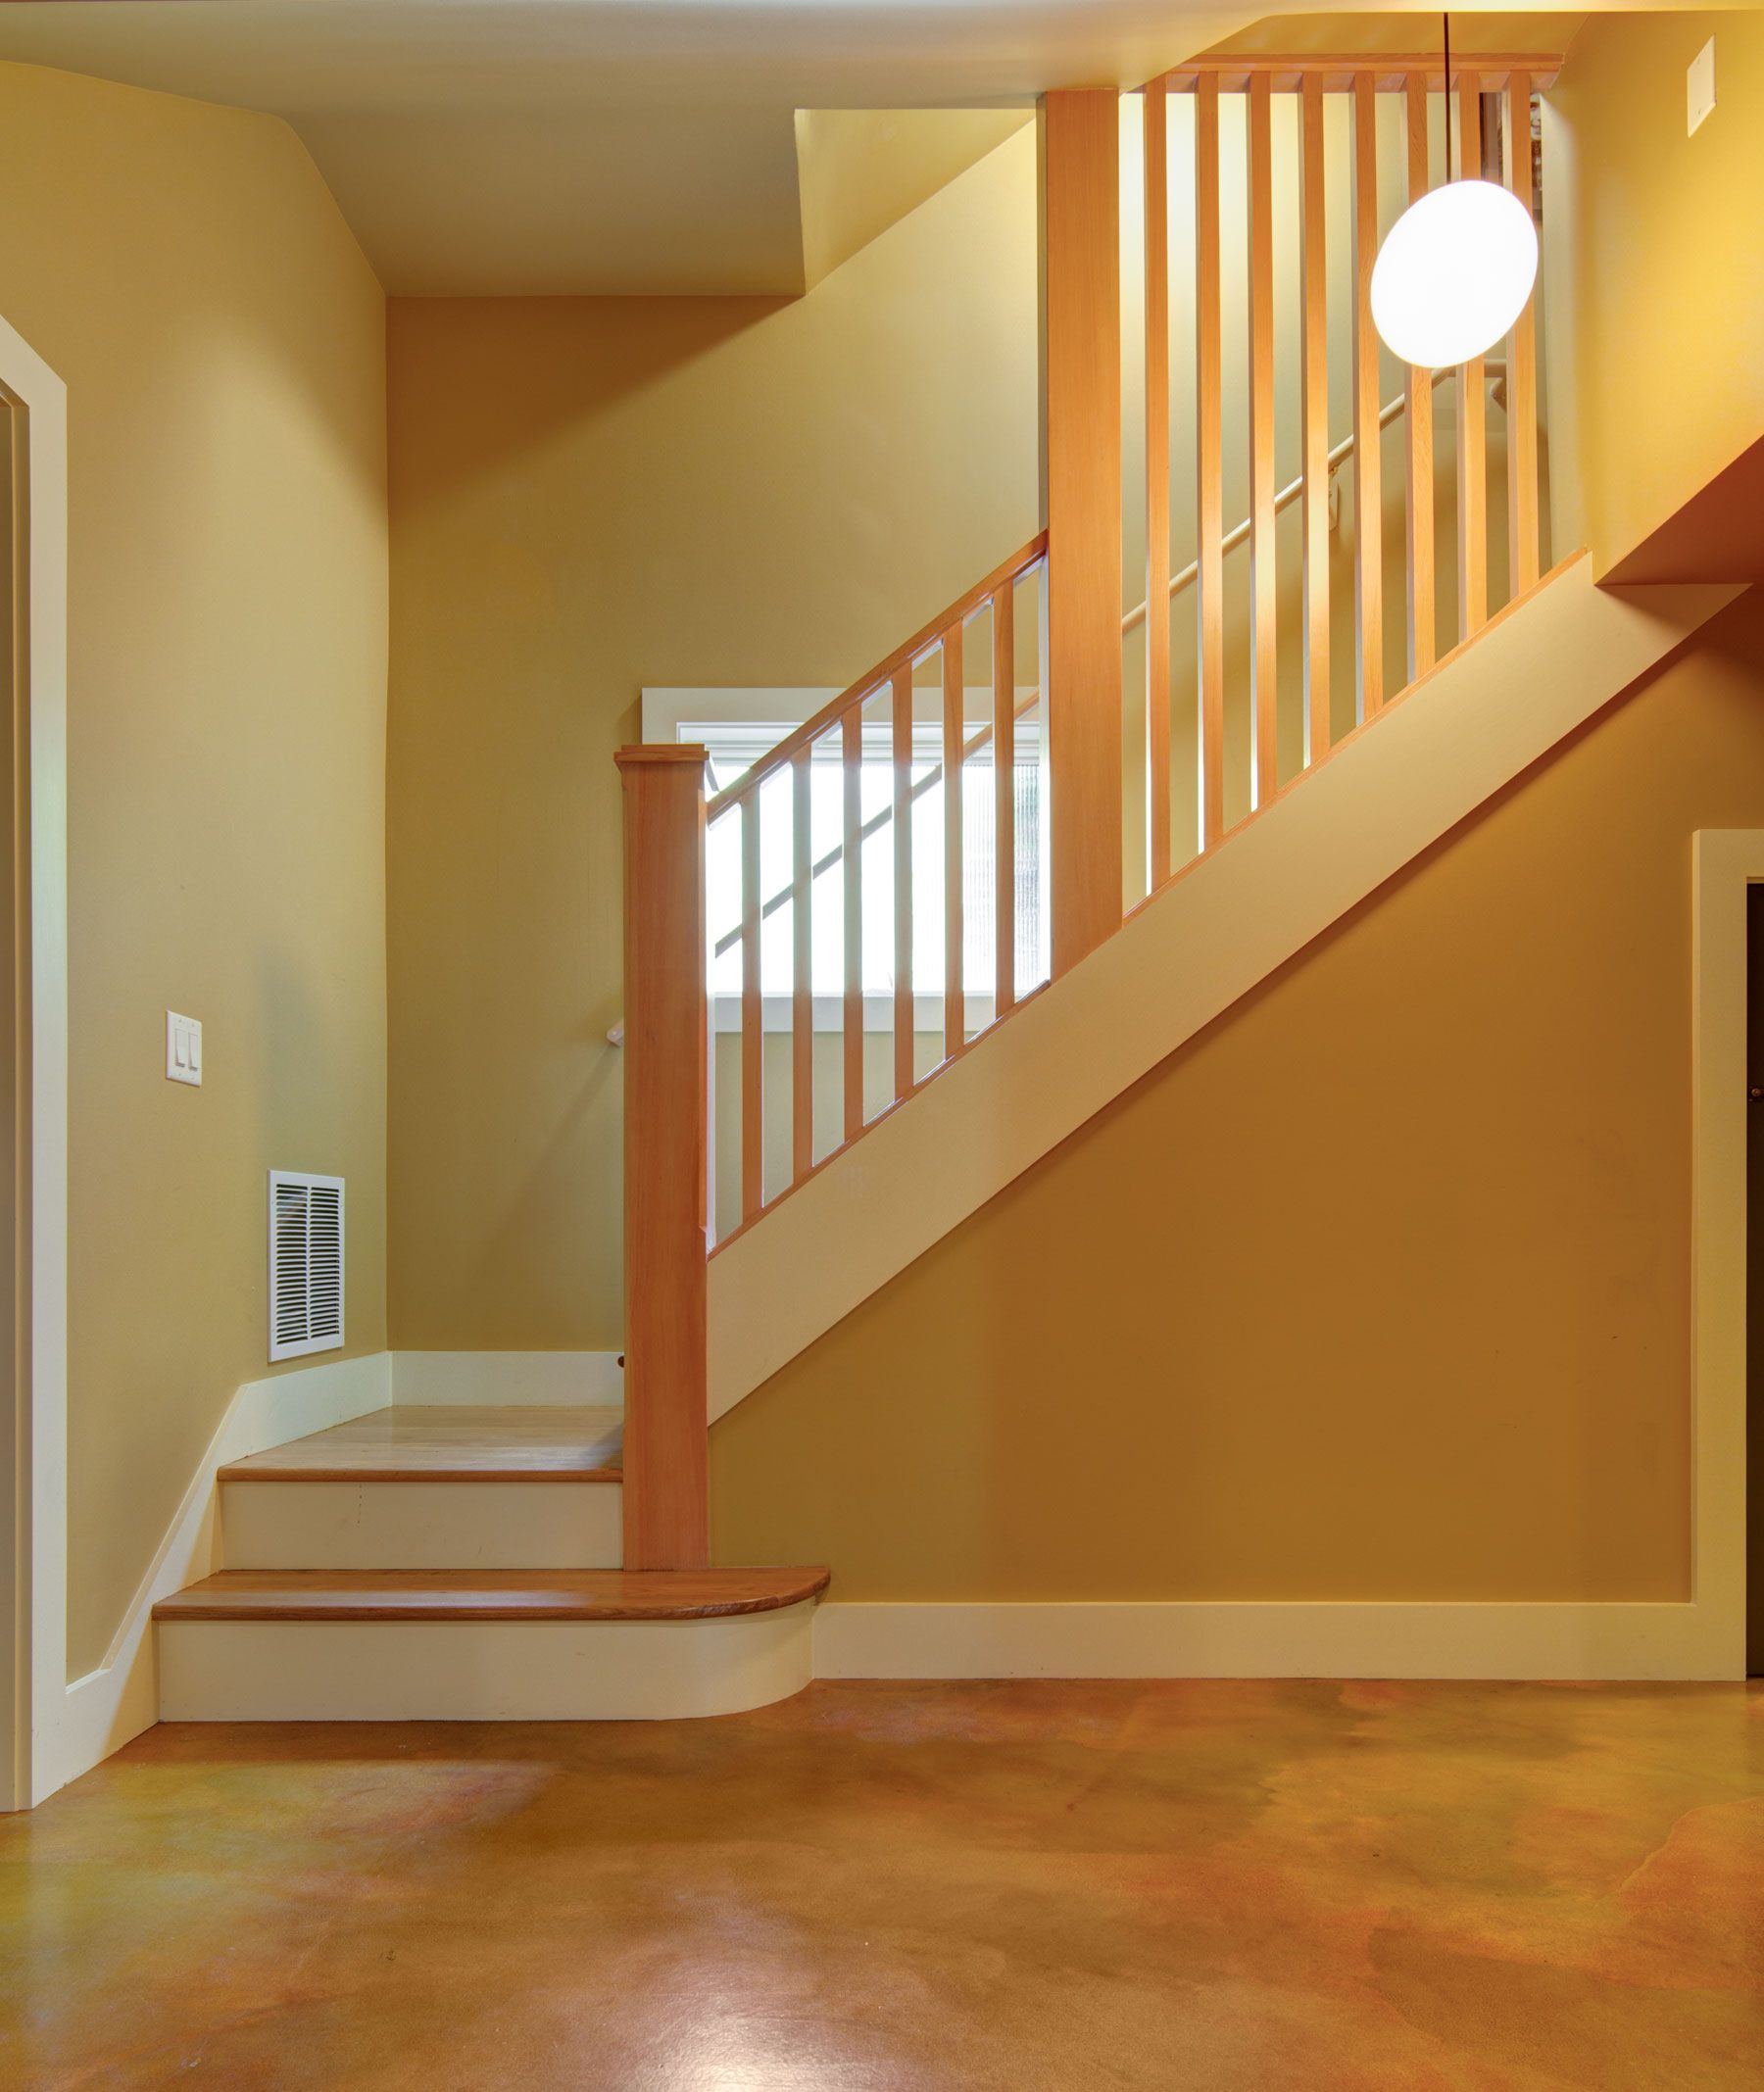 New Stairs In Portland Basement Remodeling Project | Hammer U0026 Hand